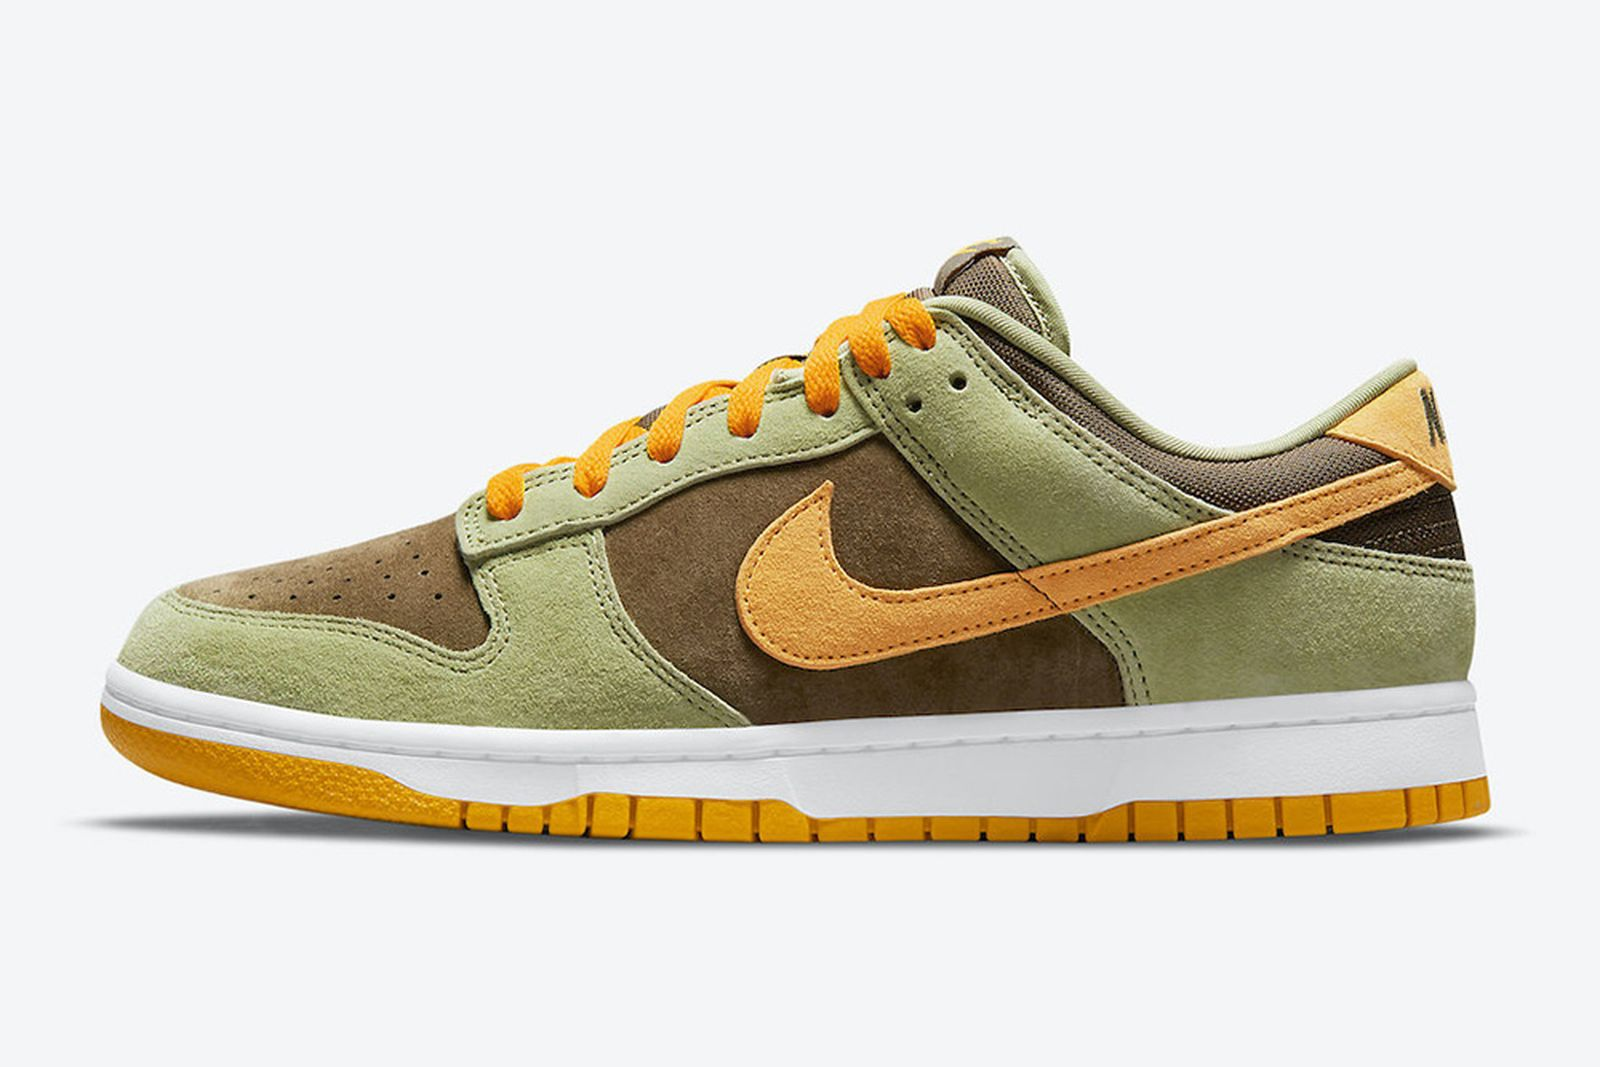 nike-dunk-low-dusty-olive-release-date-price-15